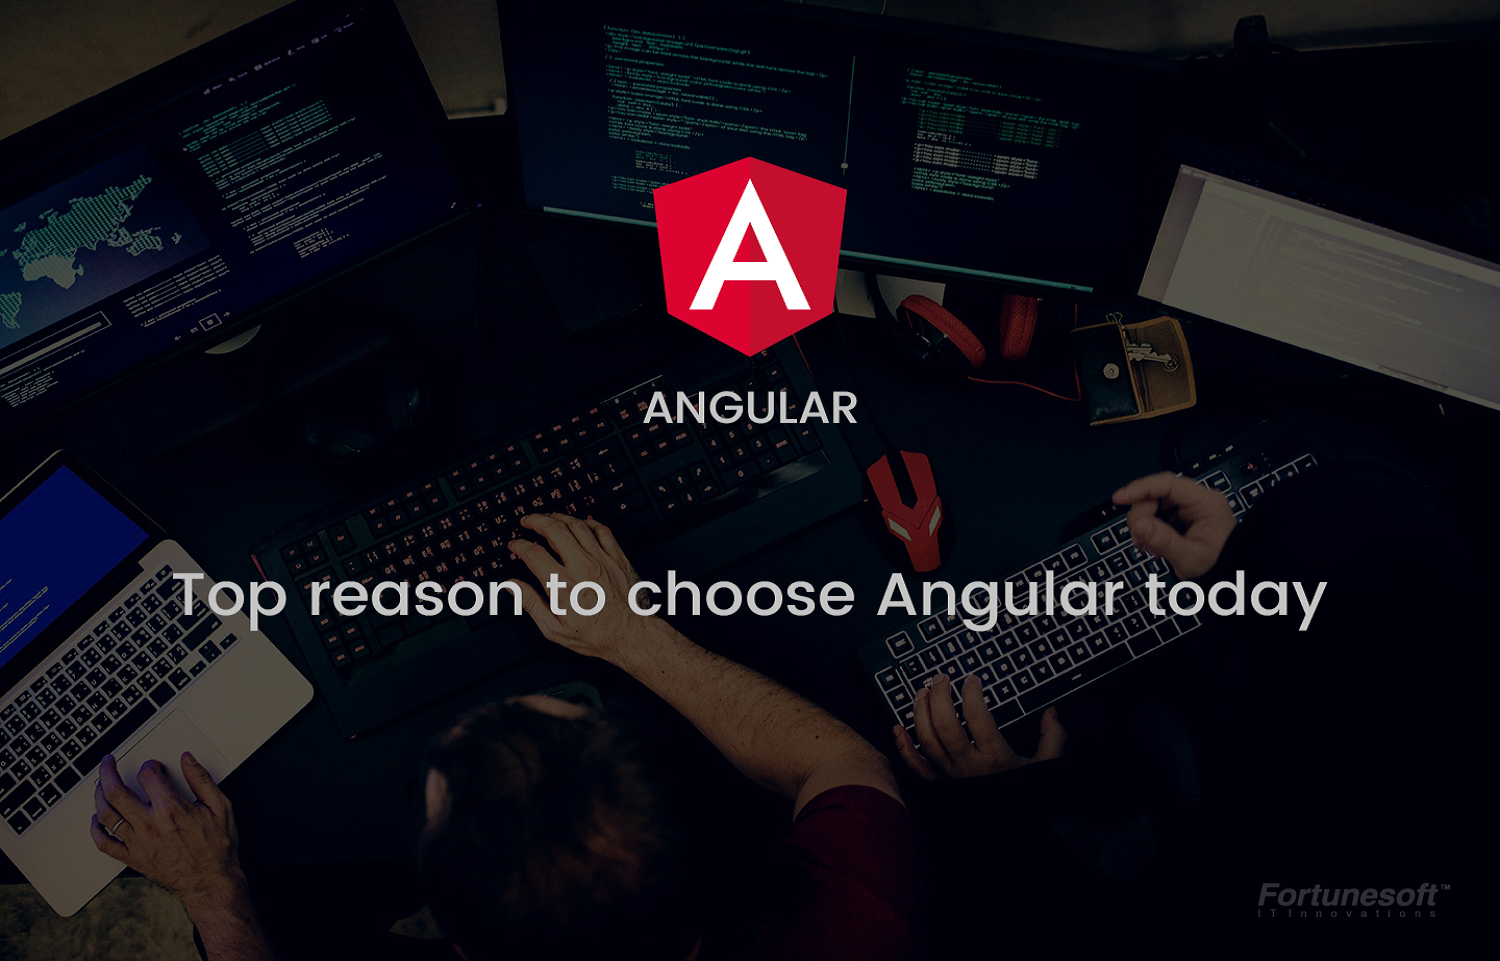 Why Angular is the Best Framework - Image 1